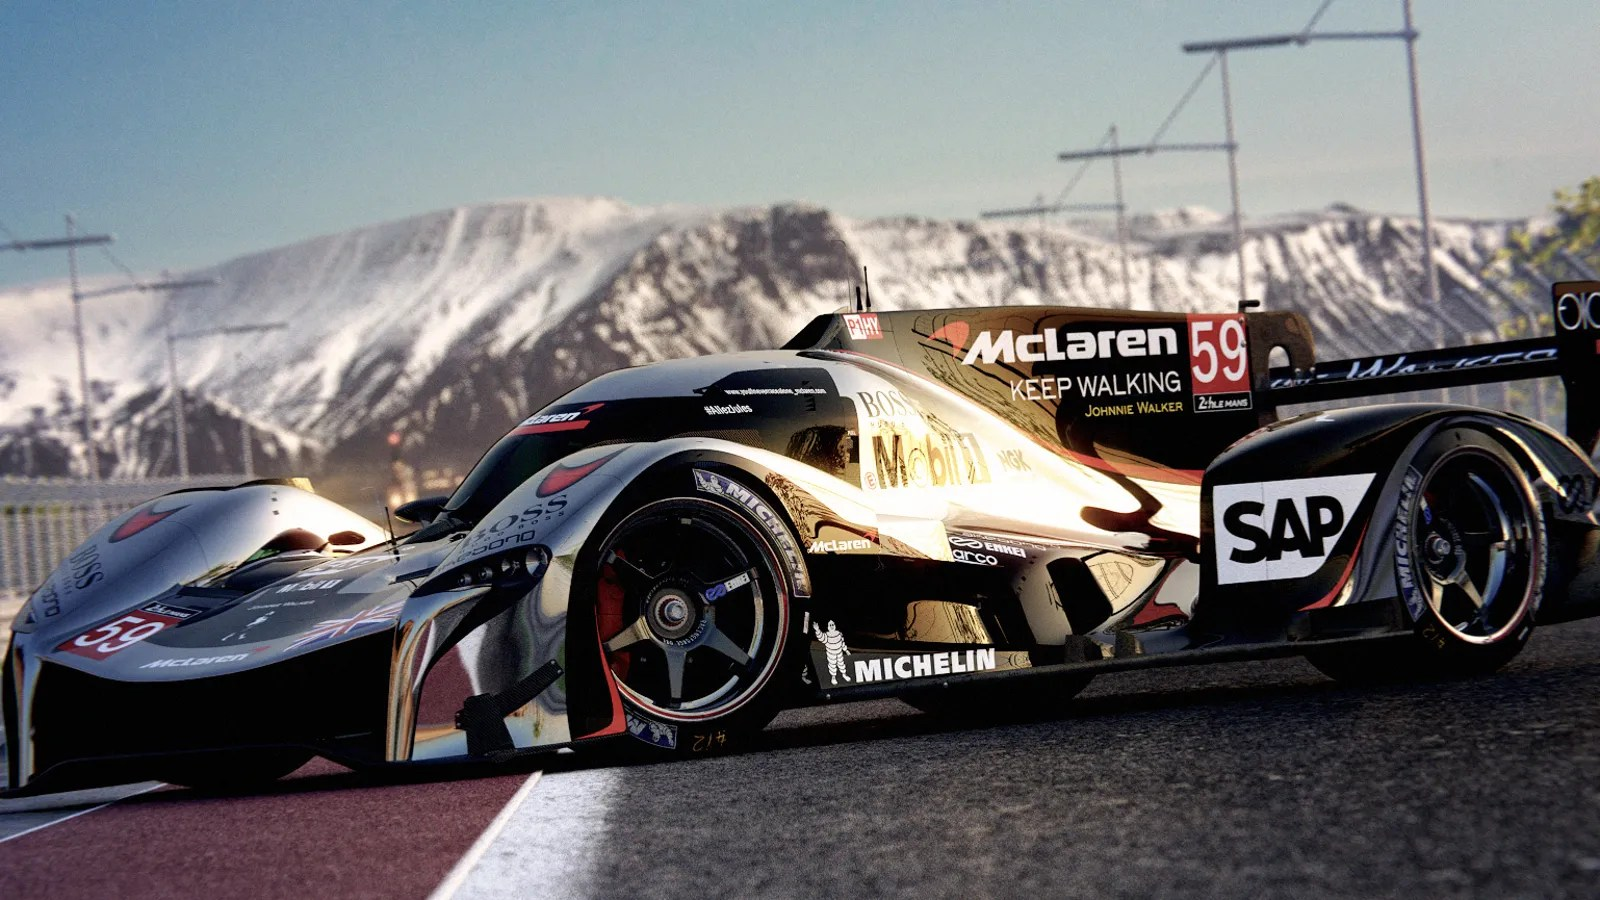 Car Wallpapers Jalopnik The Alternate Future Where Mclaren Races At Le Mans Would